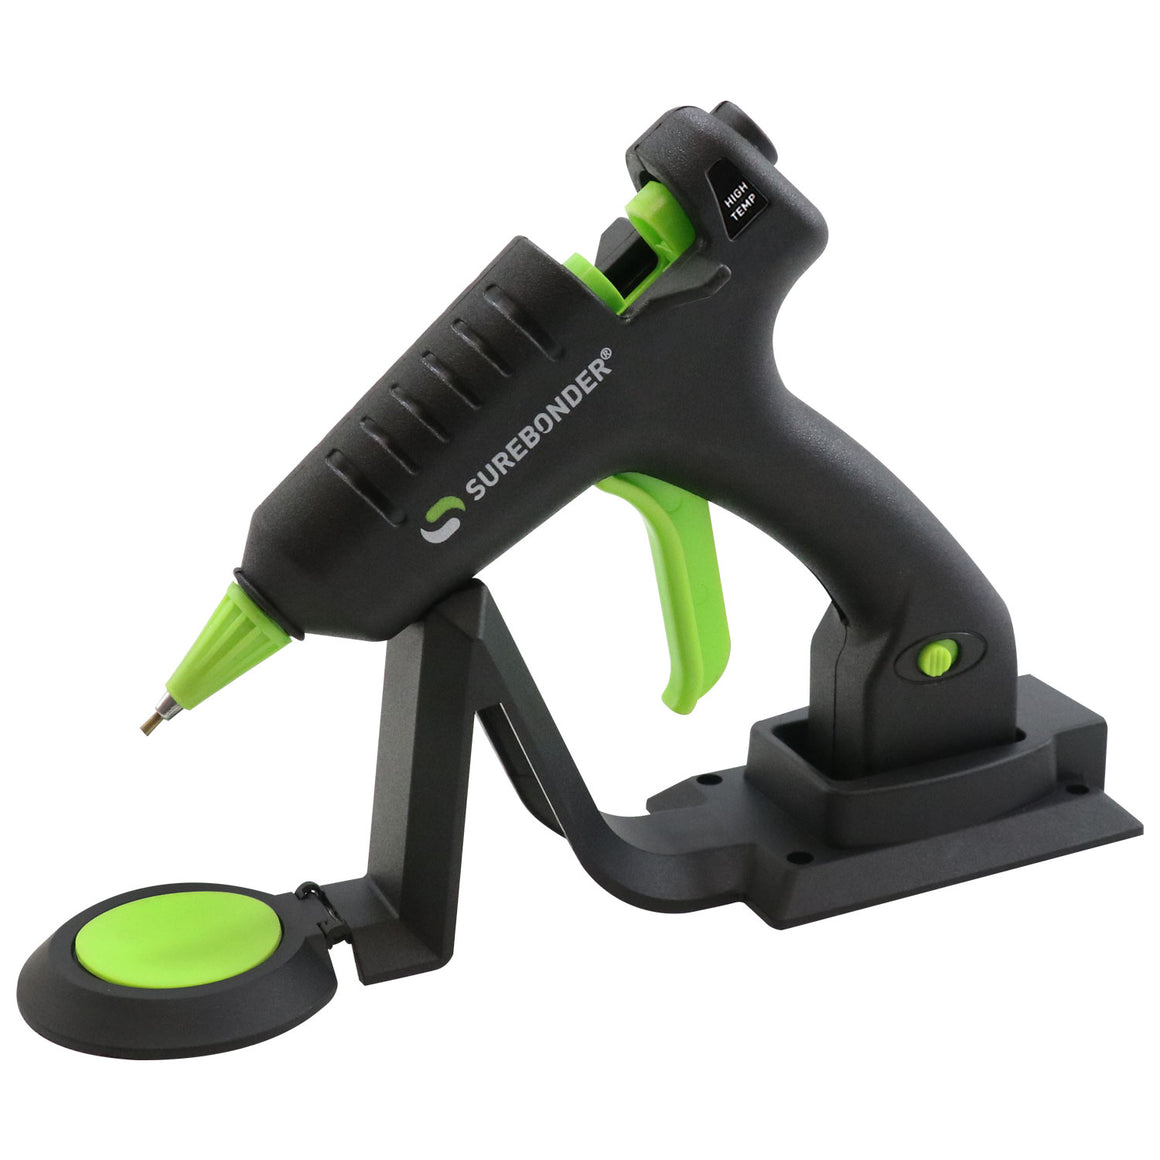 Surebonder mini-size cordless hot glue gun with precise detail tip, resting on heating stand with glue pad, 20 watts, CL-195F